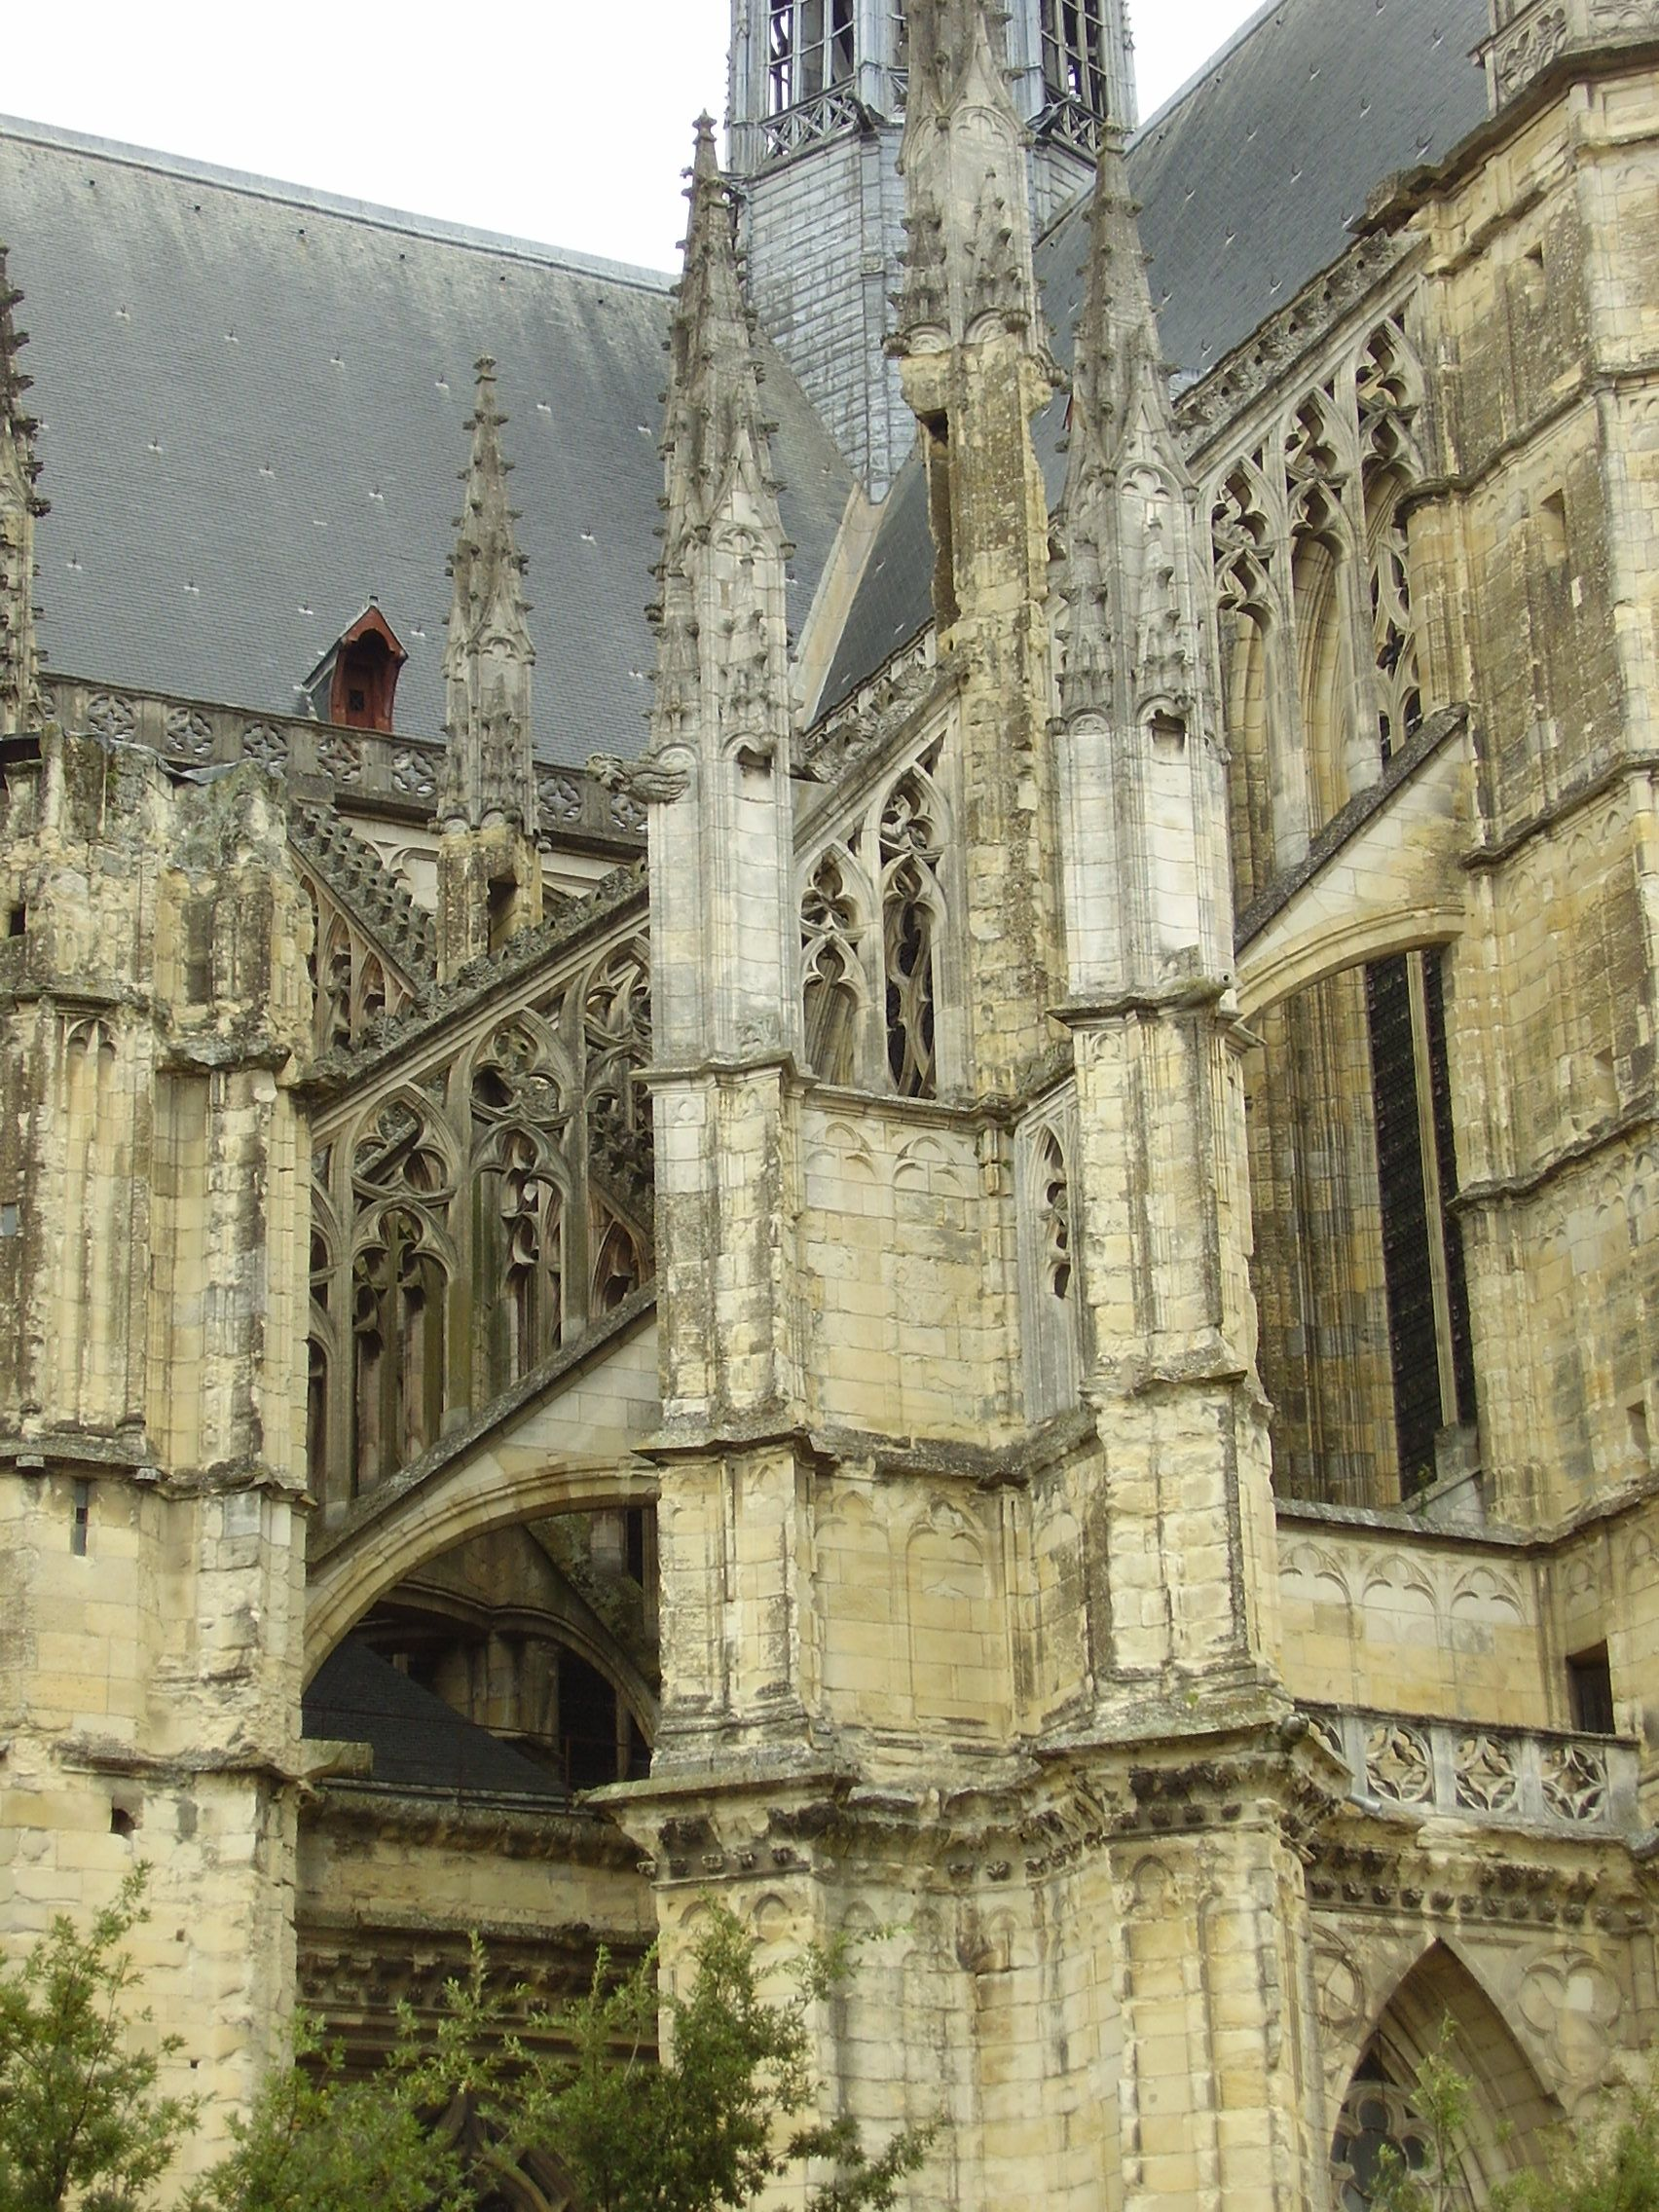 http://upload.wikimedia.org/wikipedia/commons/5/5e/Cath%C3%A9drale_Sainte-Croix_d%27Orl%C3%A9ans_2008_PD_29.JPG